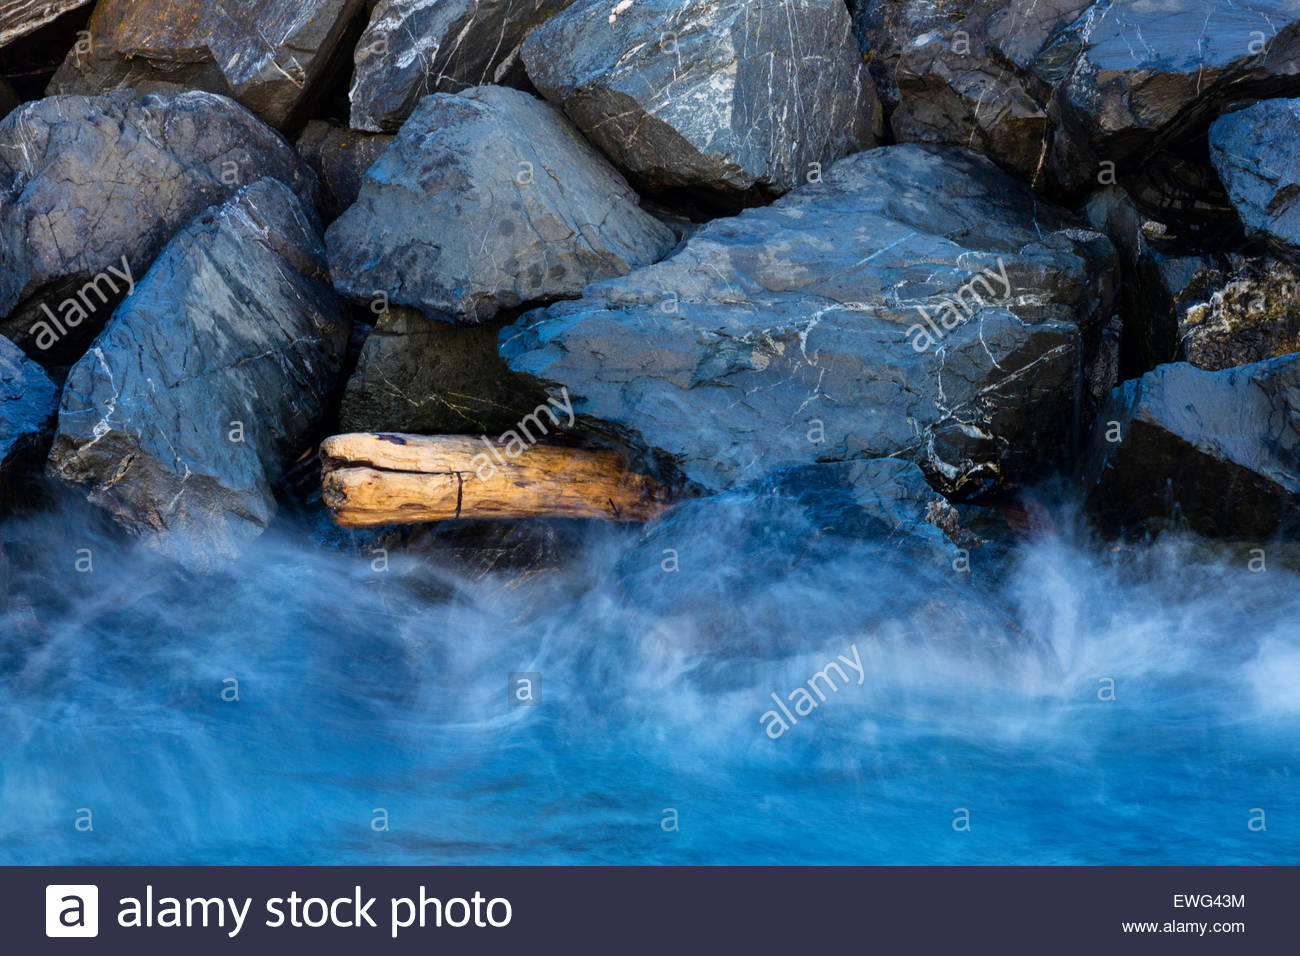 Waves from Puget Sound crash against driftwood stuck in a breakwater in Edmonds, Washington. - Stock Image